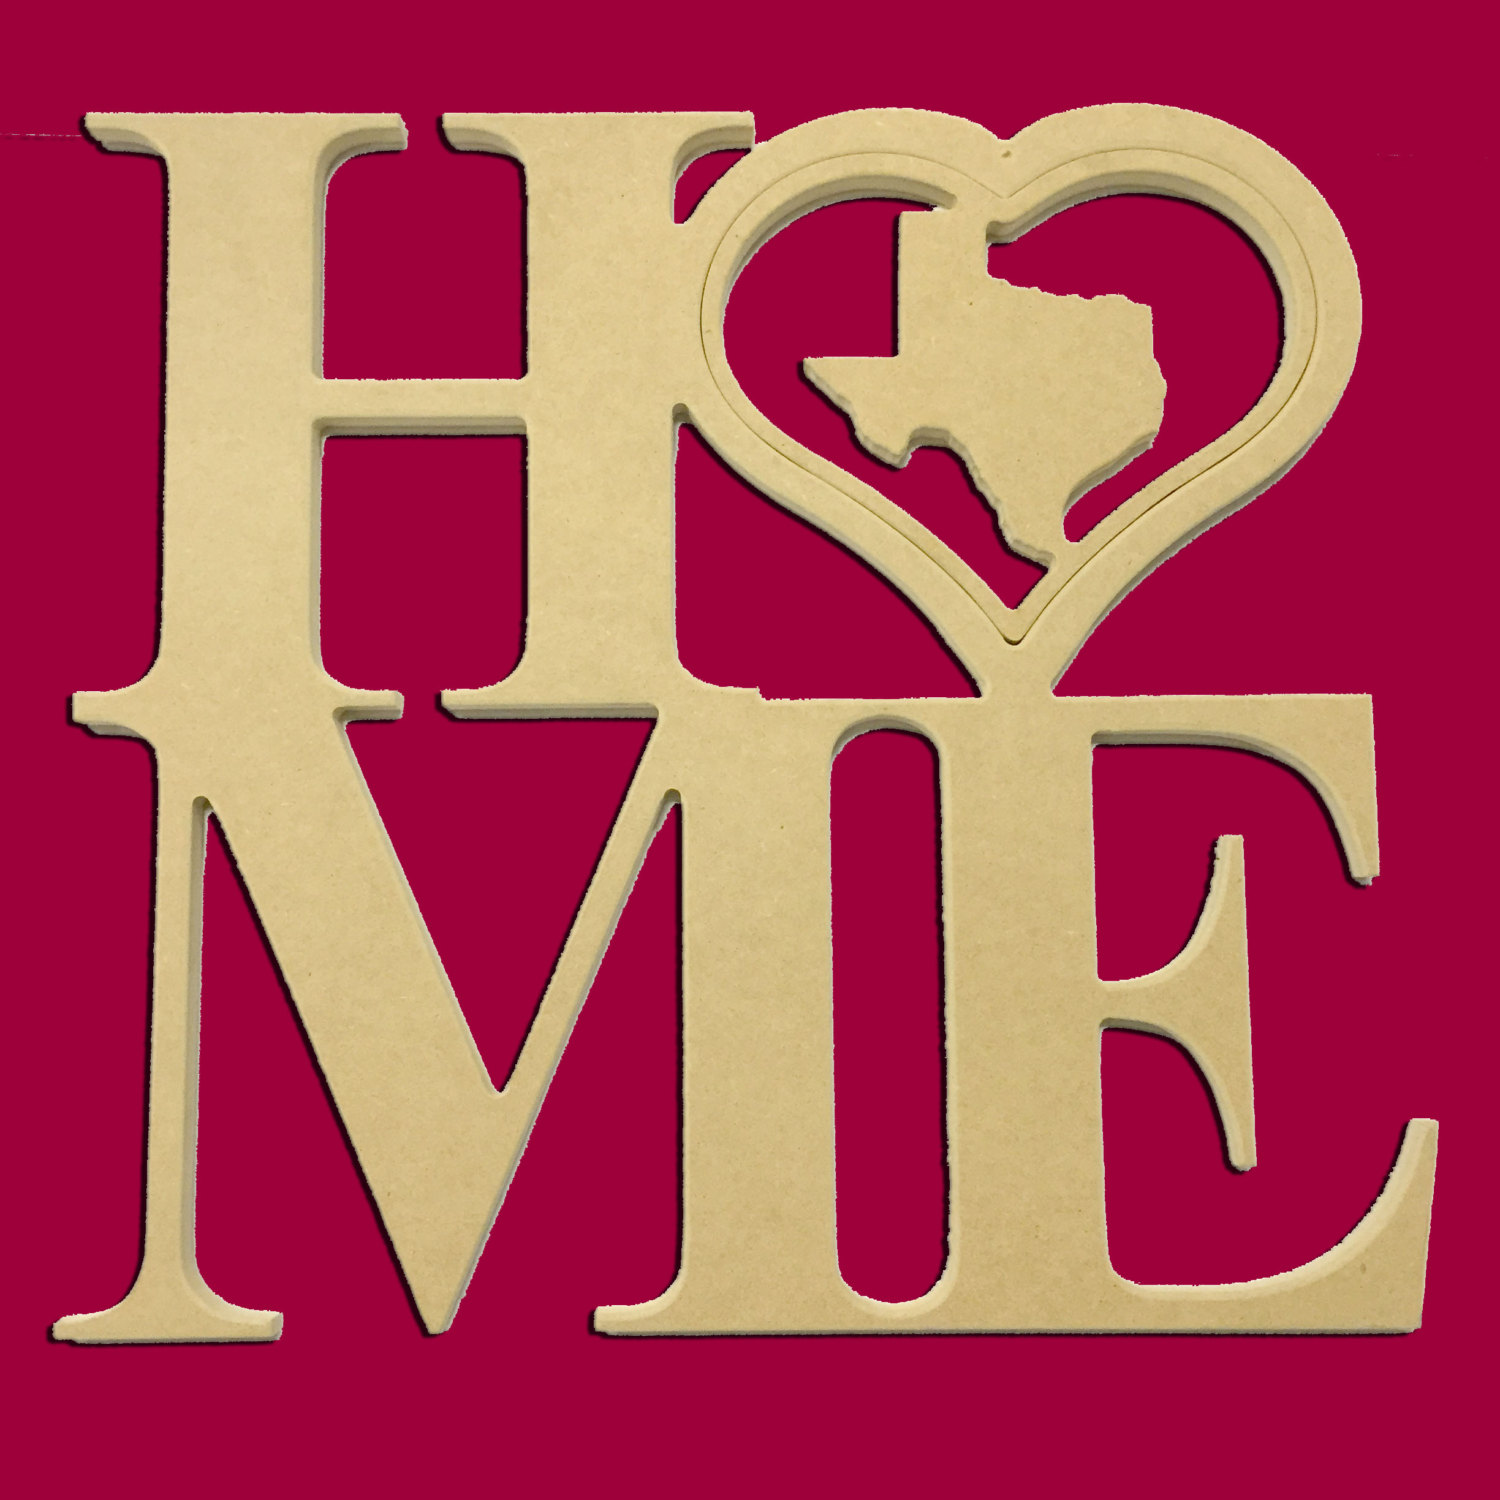 22 Quot Home Heart Large W 9 Quot Insert Options Times New Roman